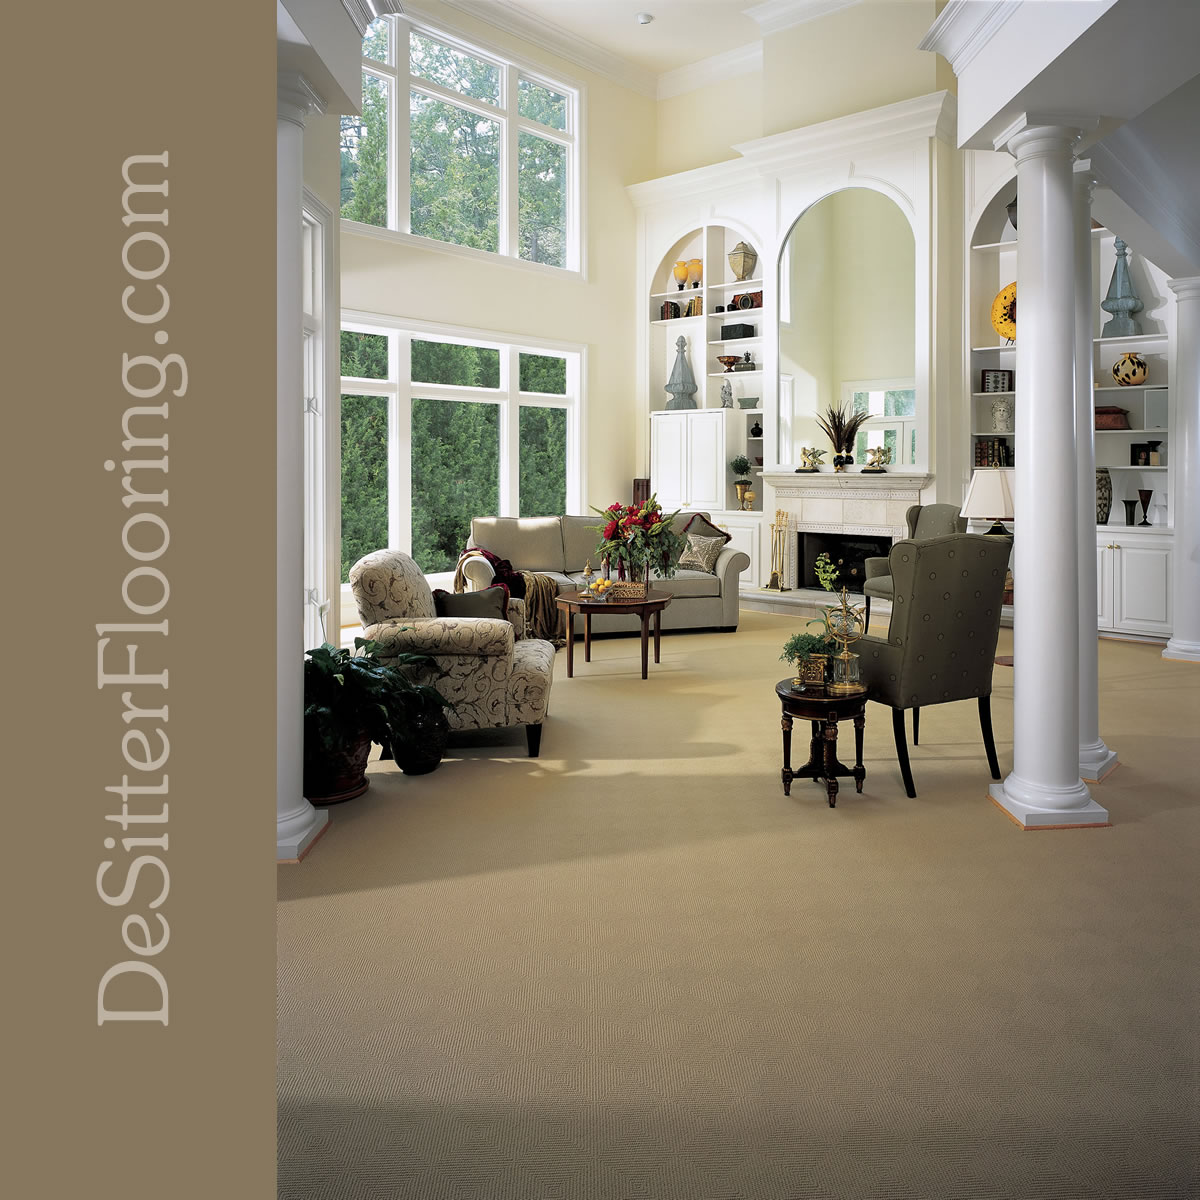 60527 desitter flooring desitter flooring provides a wide selection of carpets at a superb value make the most out of your home improvements dollars tyukafo